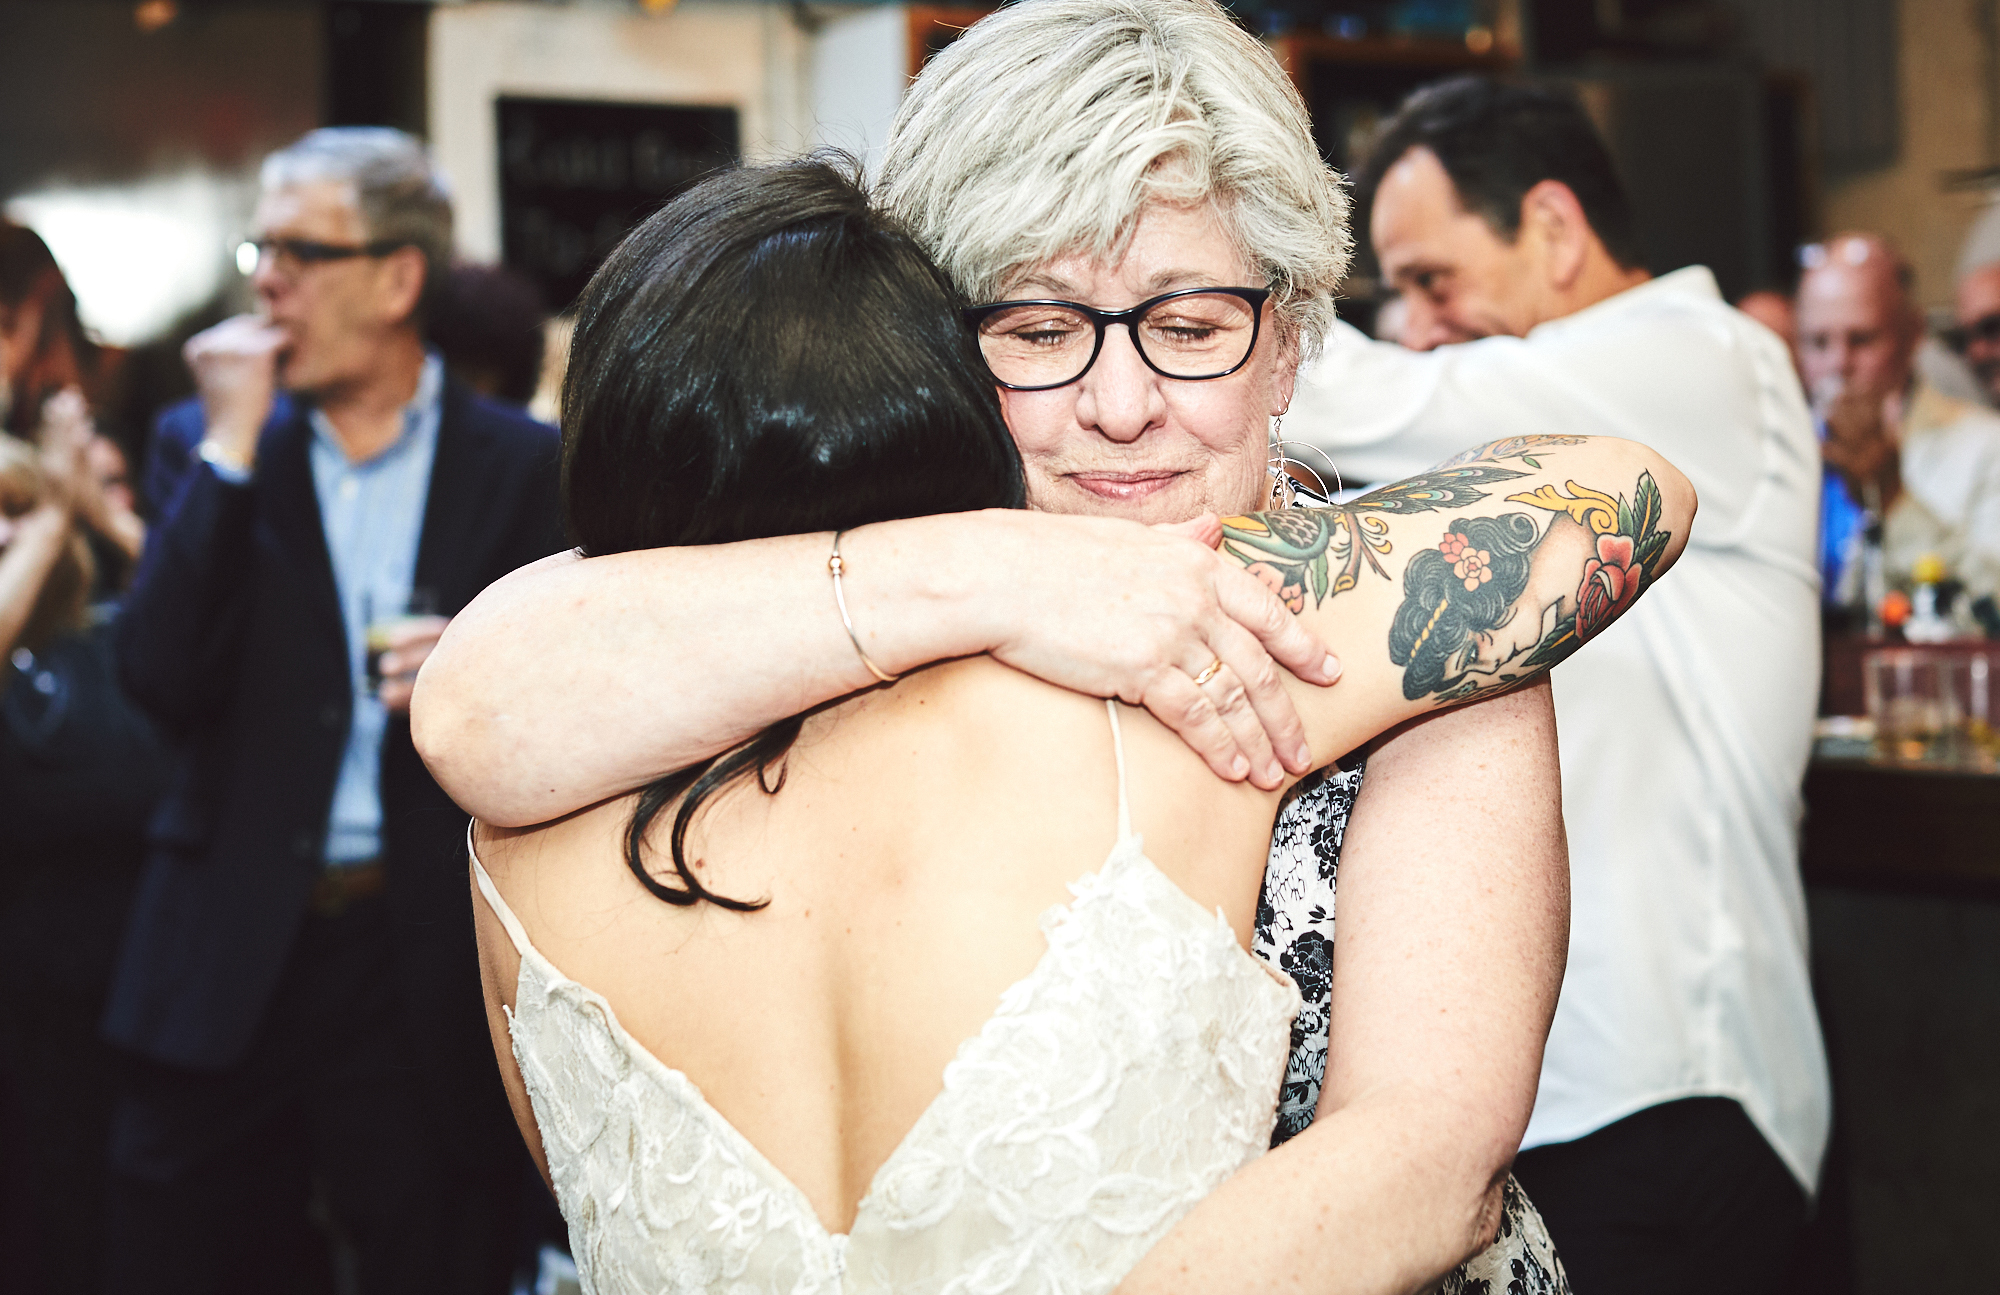 190518_SpringThreesBreweryWedding_By_BriJohnsonWeddings_0116.jpg